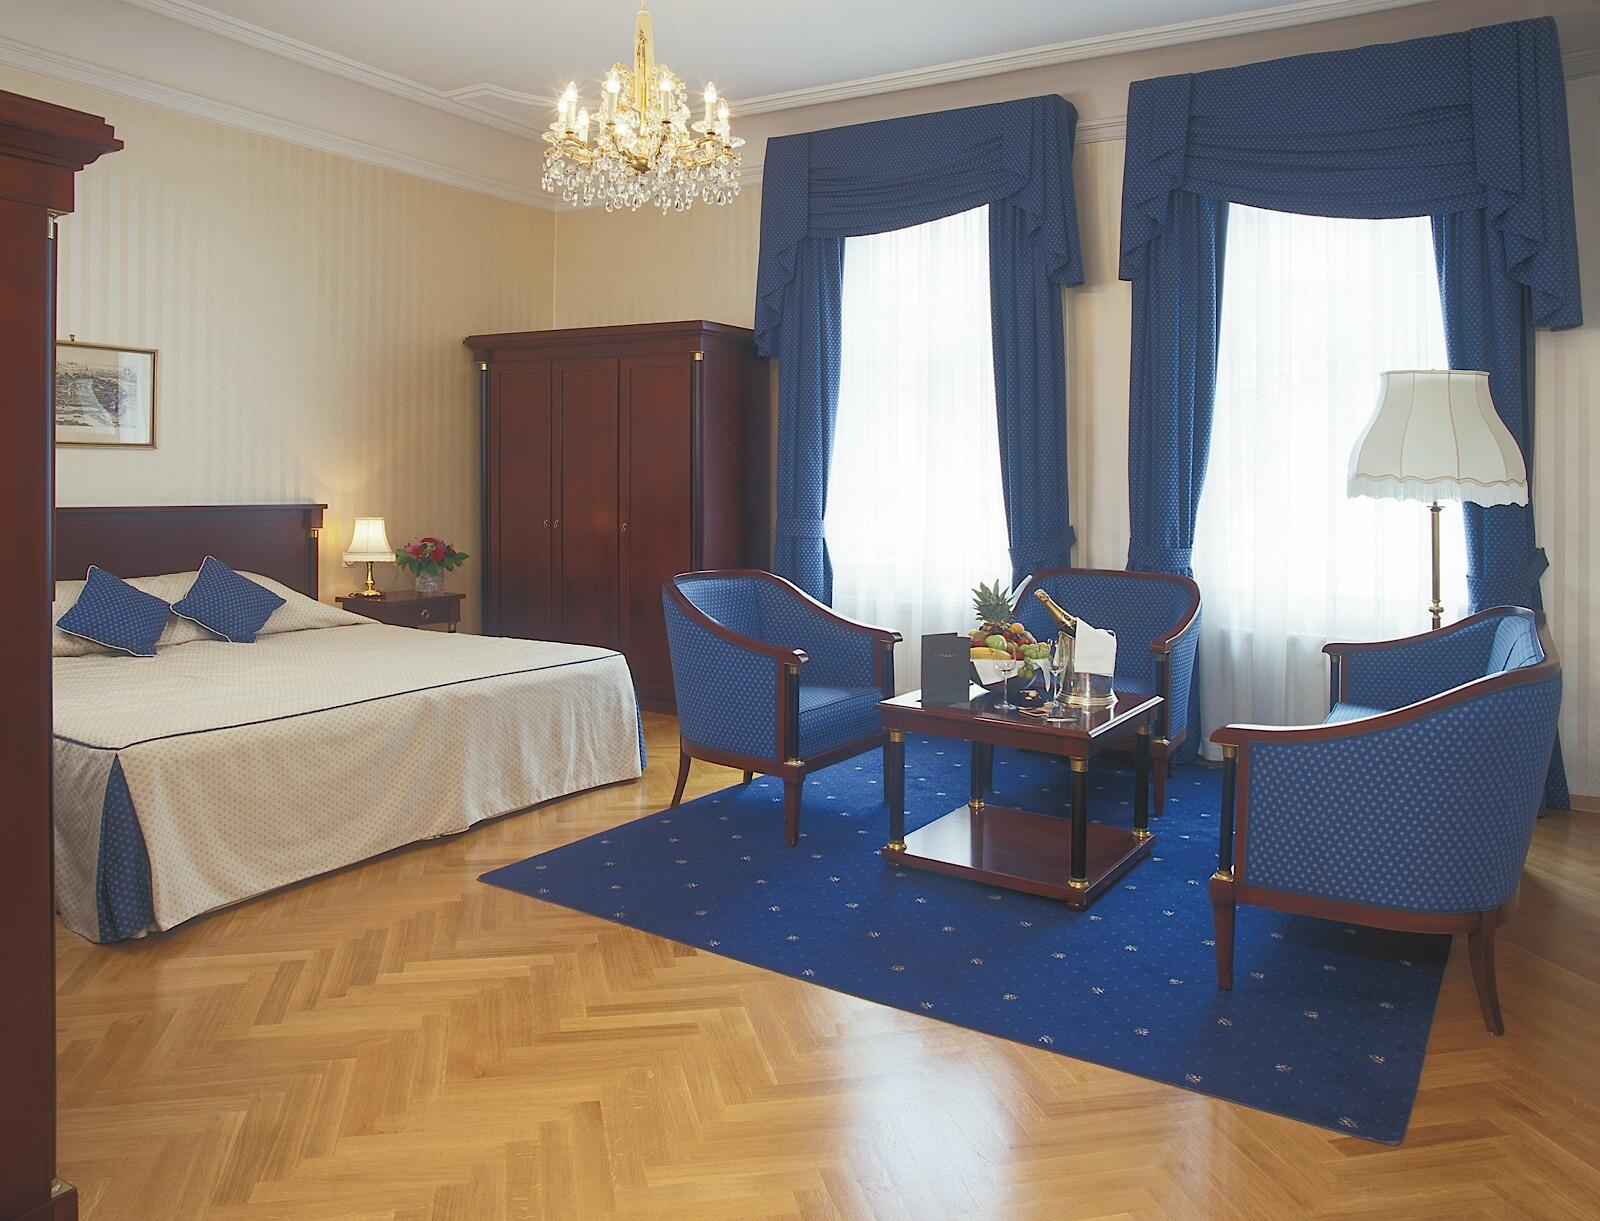 Classic Room at Ambassador Hotel in Vienna